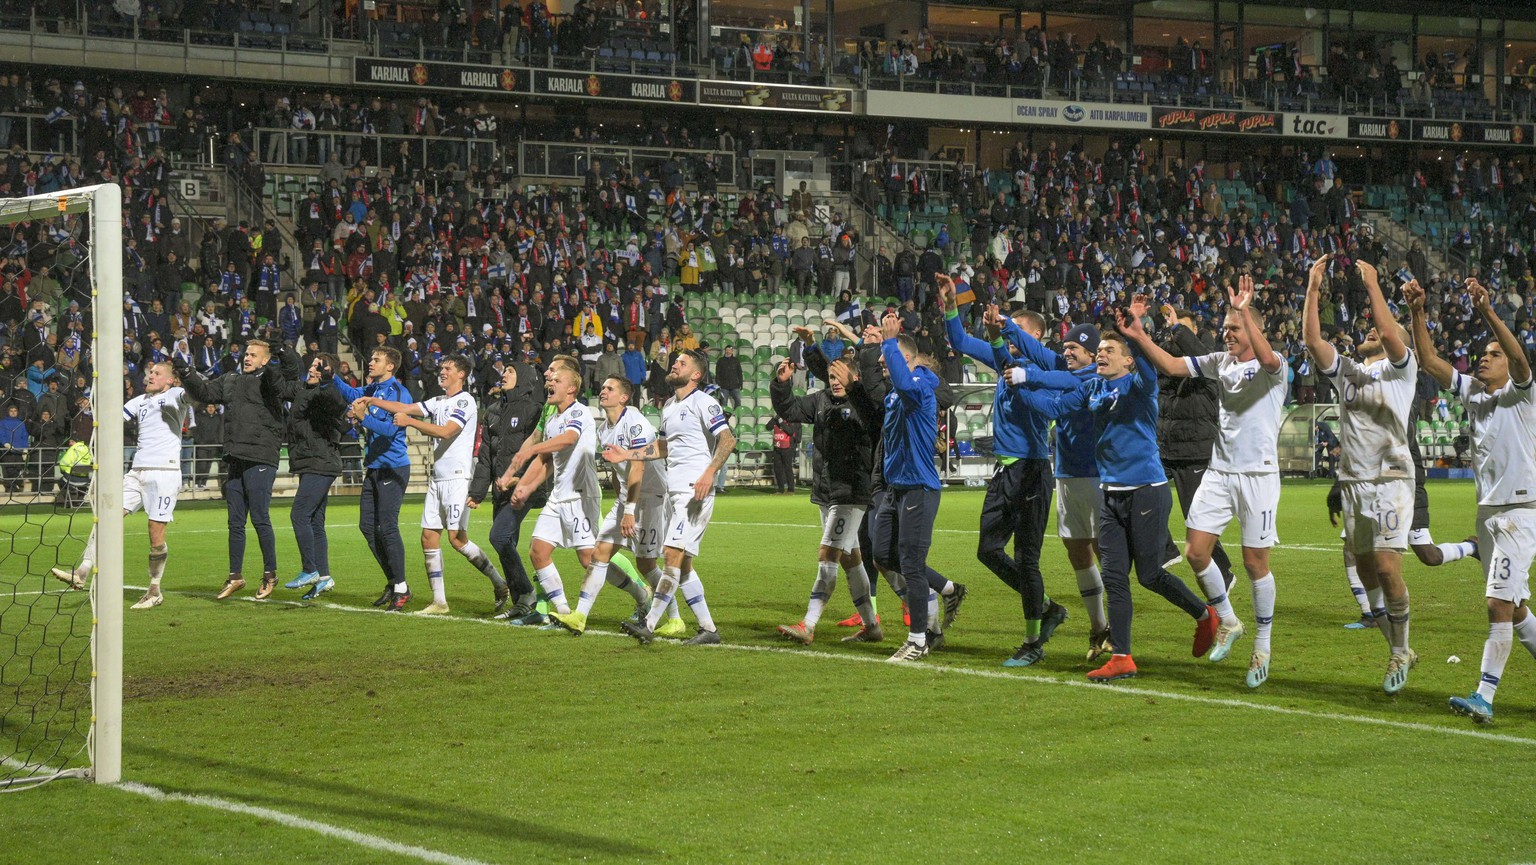 epa07923471 Finnish team celebrates with supporters after the UEFA EURO 2020 qualifiers match between Finland and Armenia at the Veritas Stadium in Turku, Finland, 15 October 2019.  EPA/VESA-MATTI VAARA